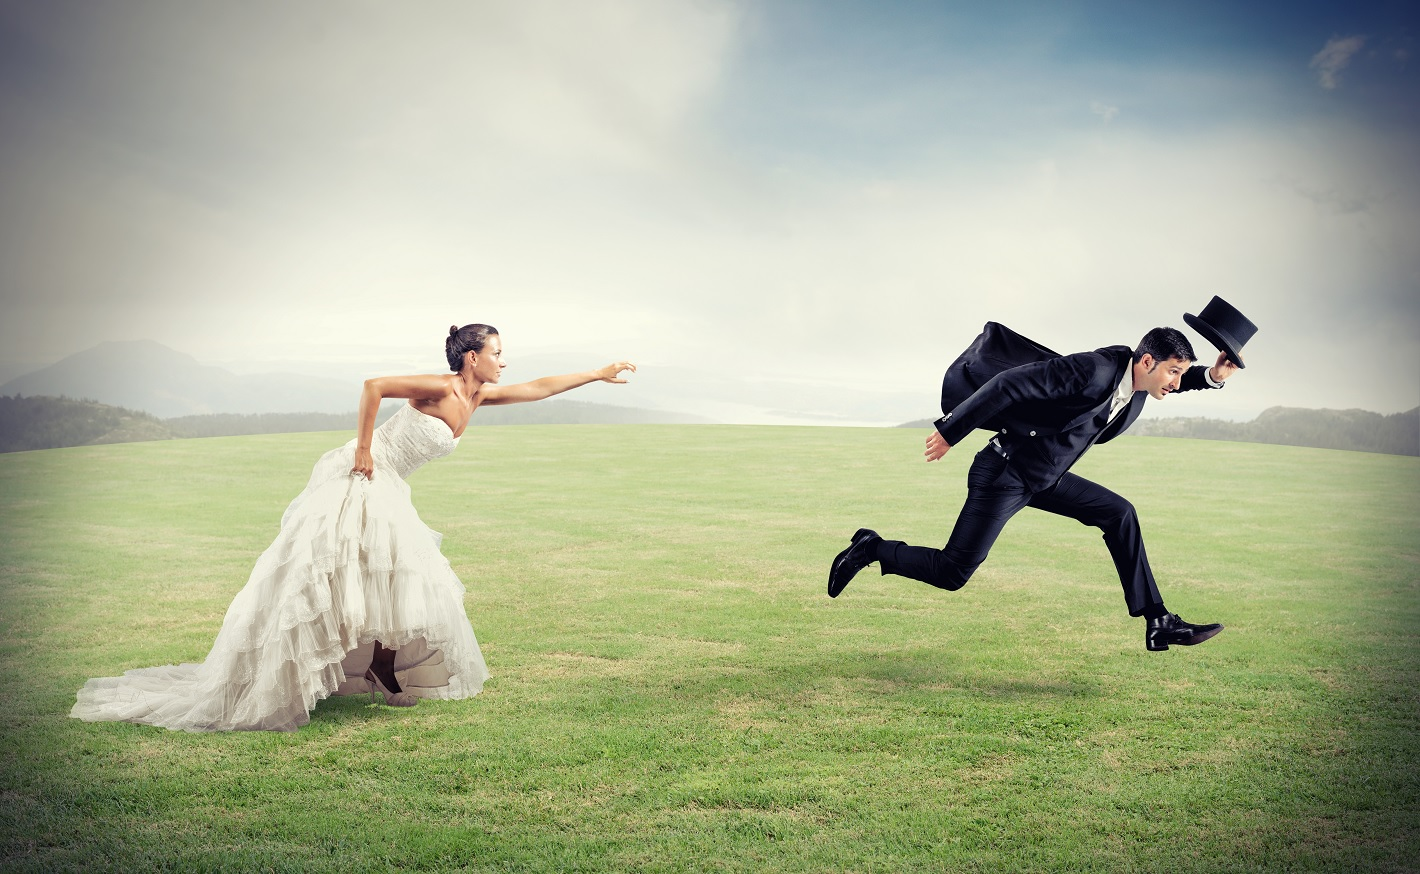 When can you start dating after filing for divorce